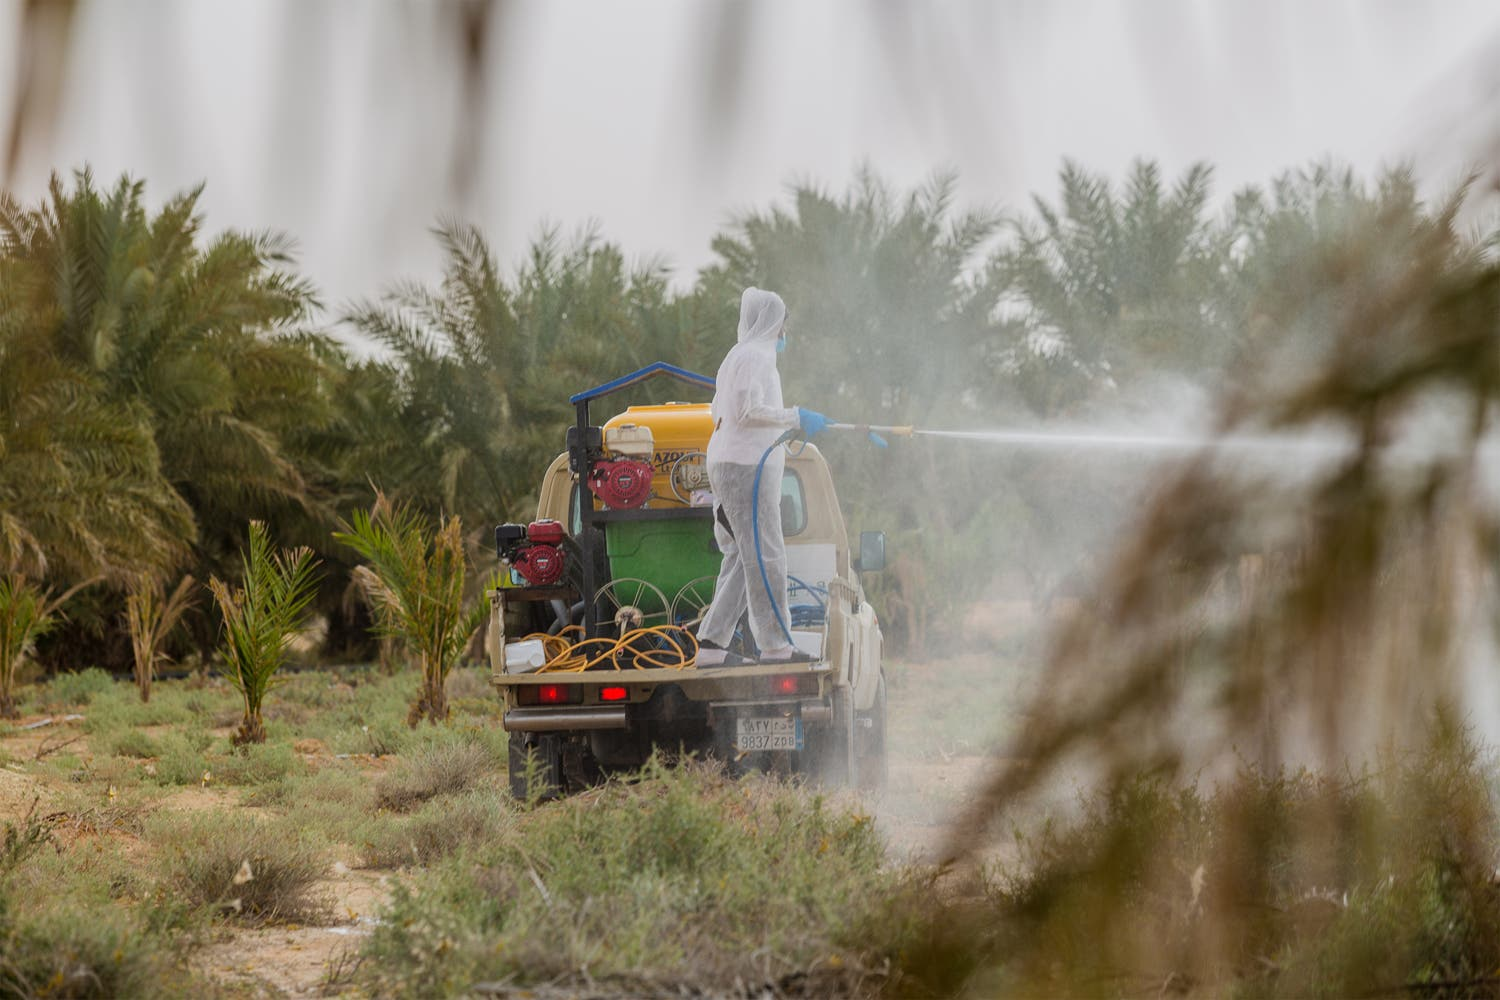 More than 15 thousand scientific spraying to control locusts in Saudi Arabia within a year